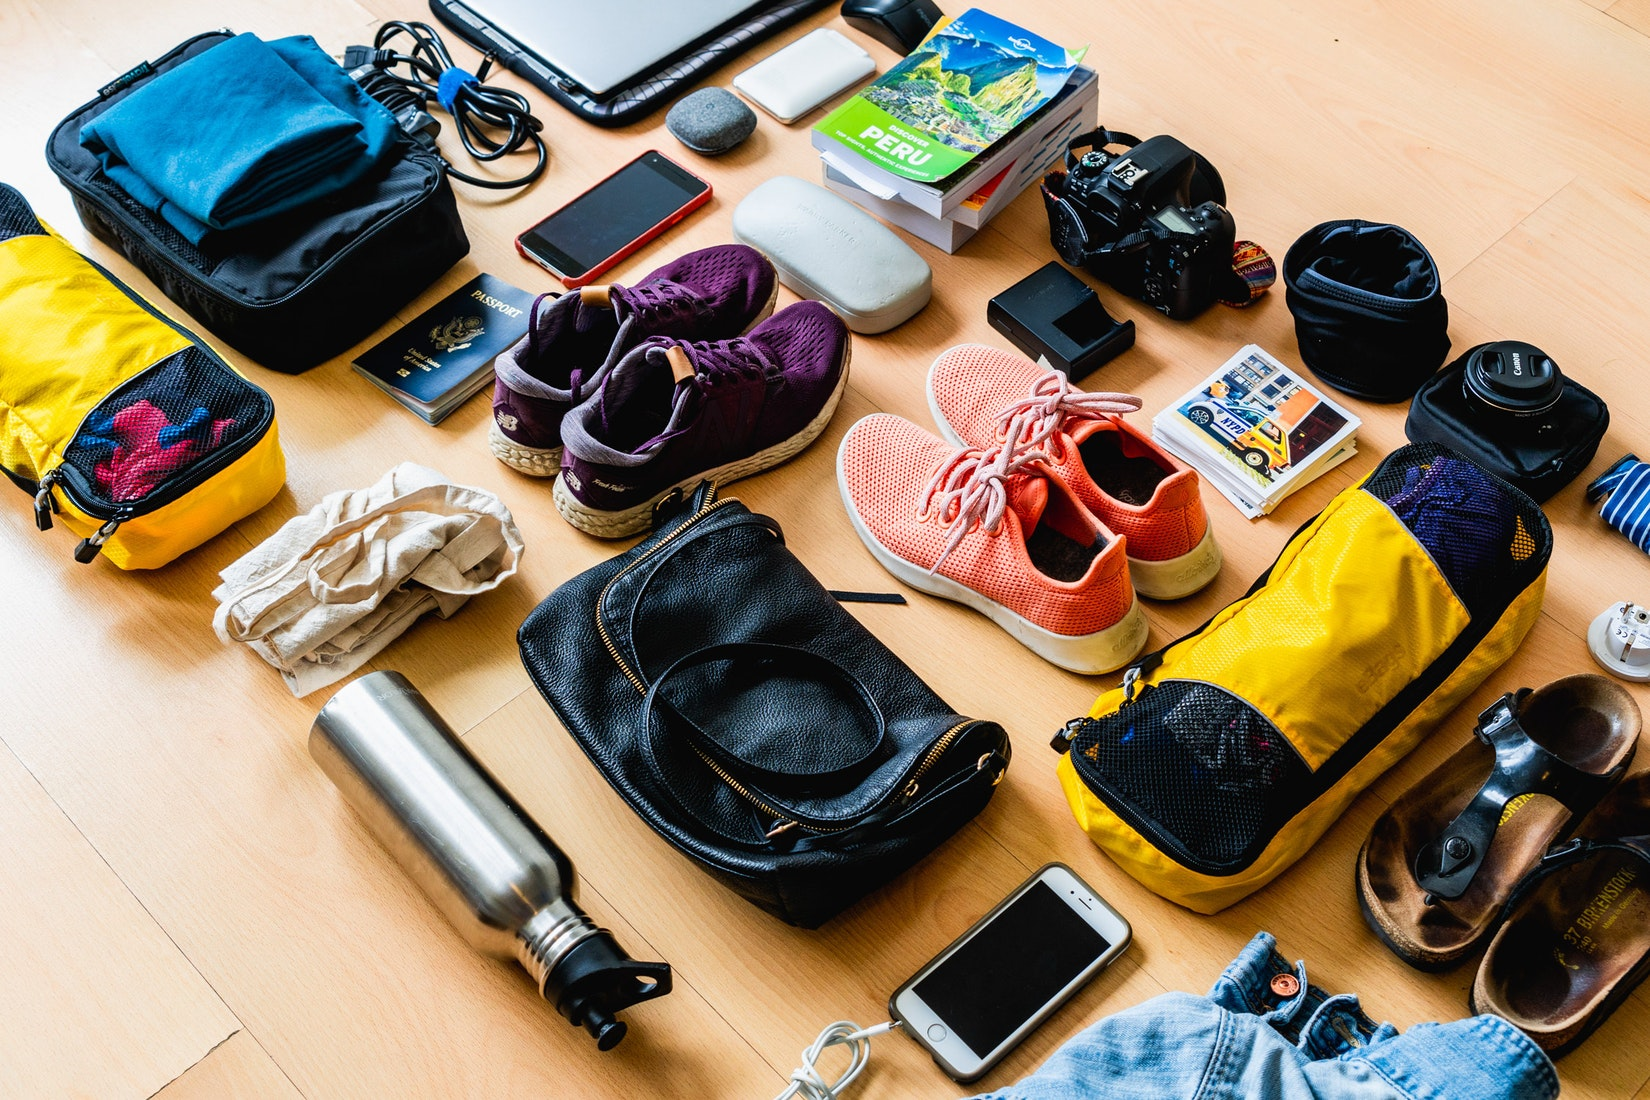 Items to pack while traveling. The items include shoes, cameras, electronics and books